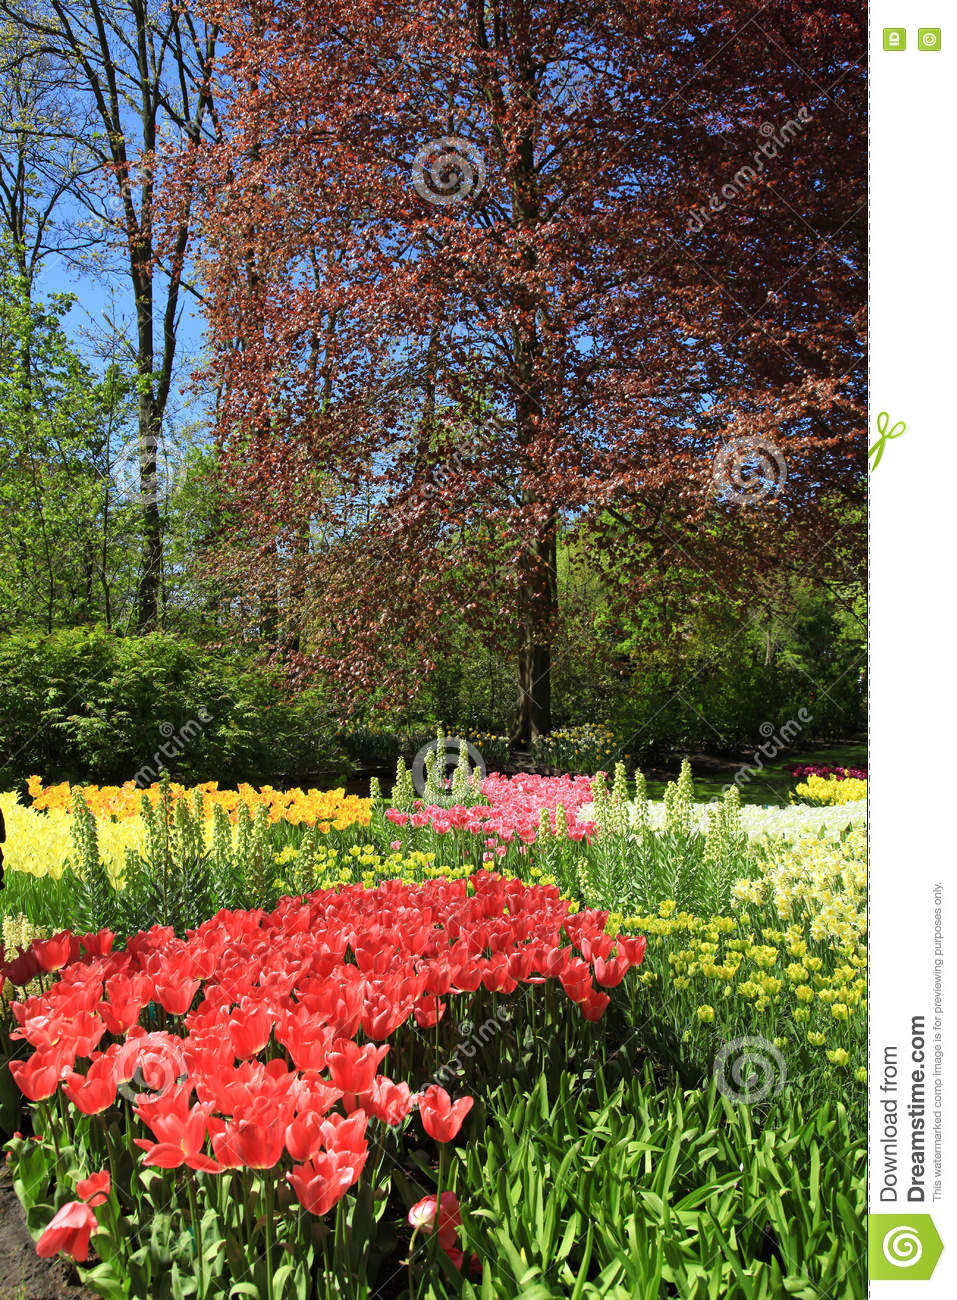 Multicolored Tulips Trees And Flowers In Spring In The Keukenho